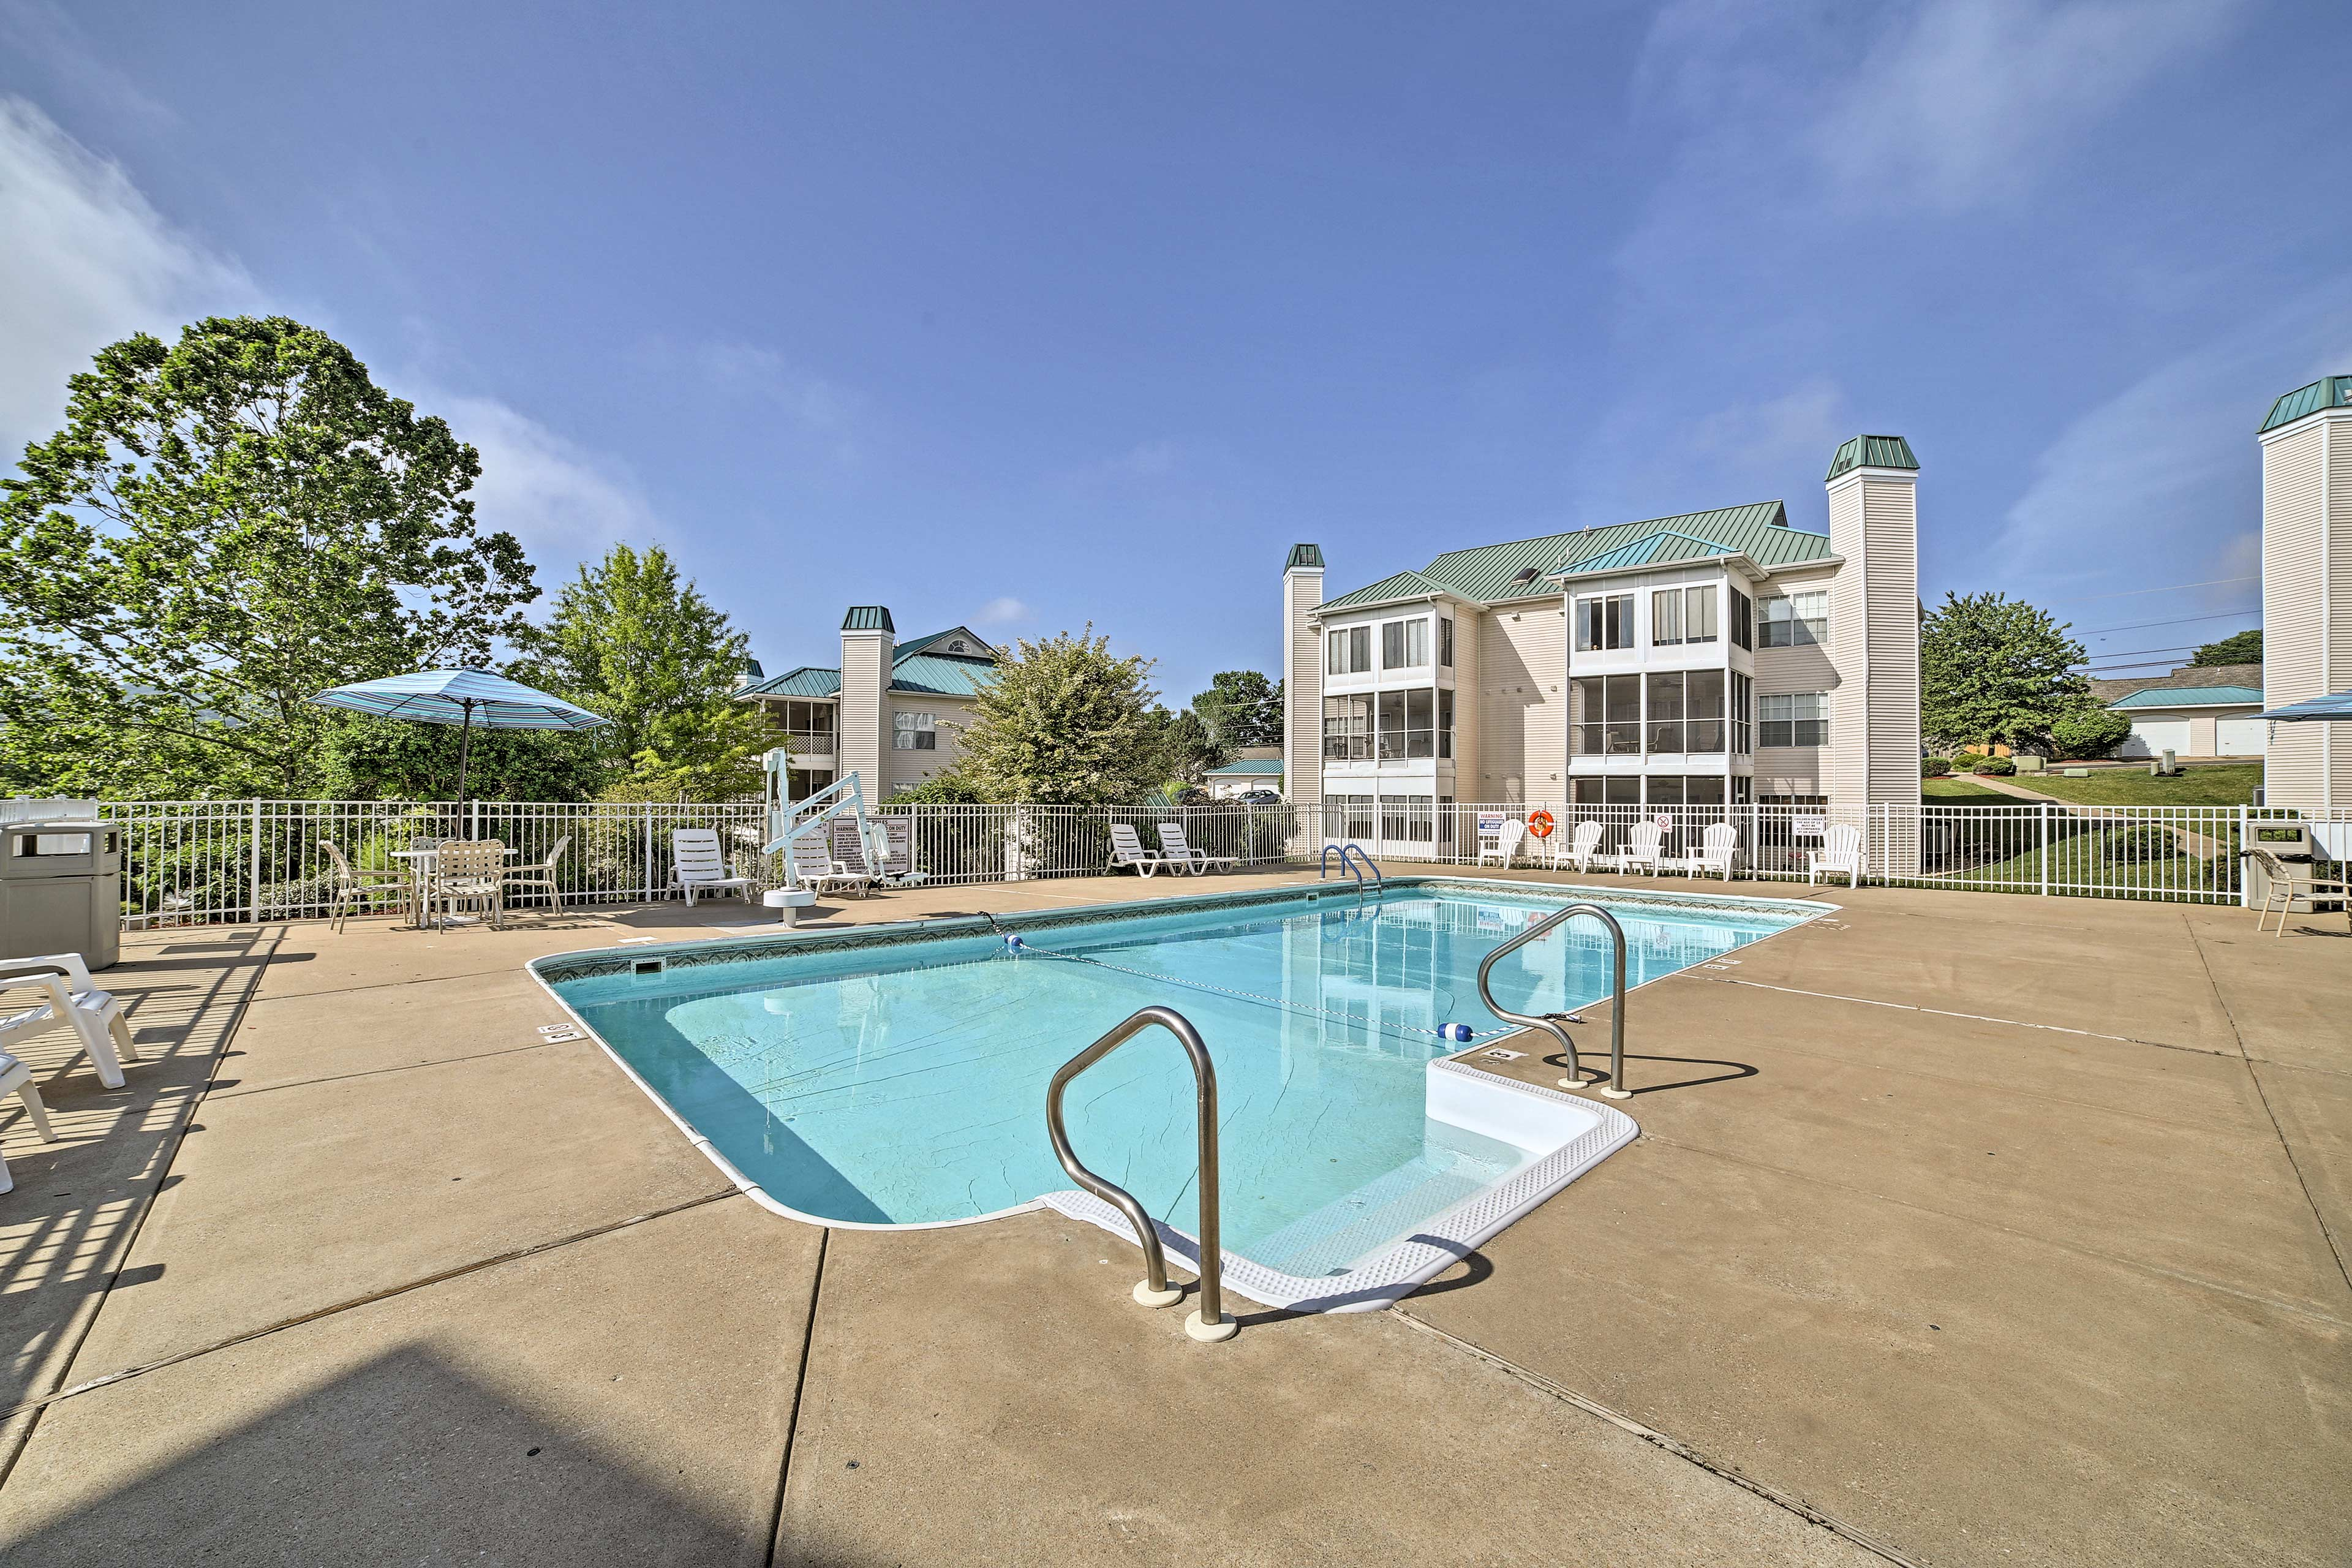 The community amenities are a short walk away.